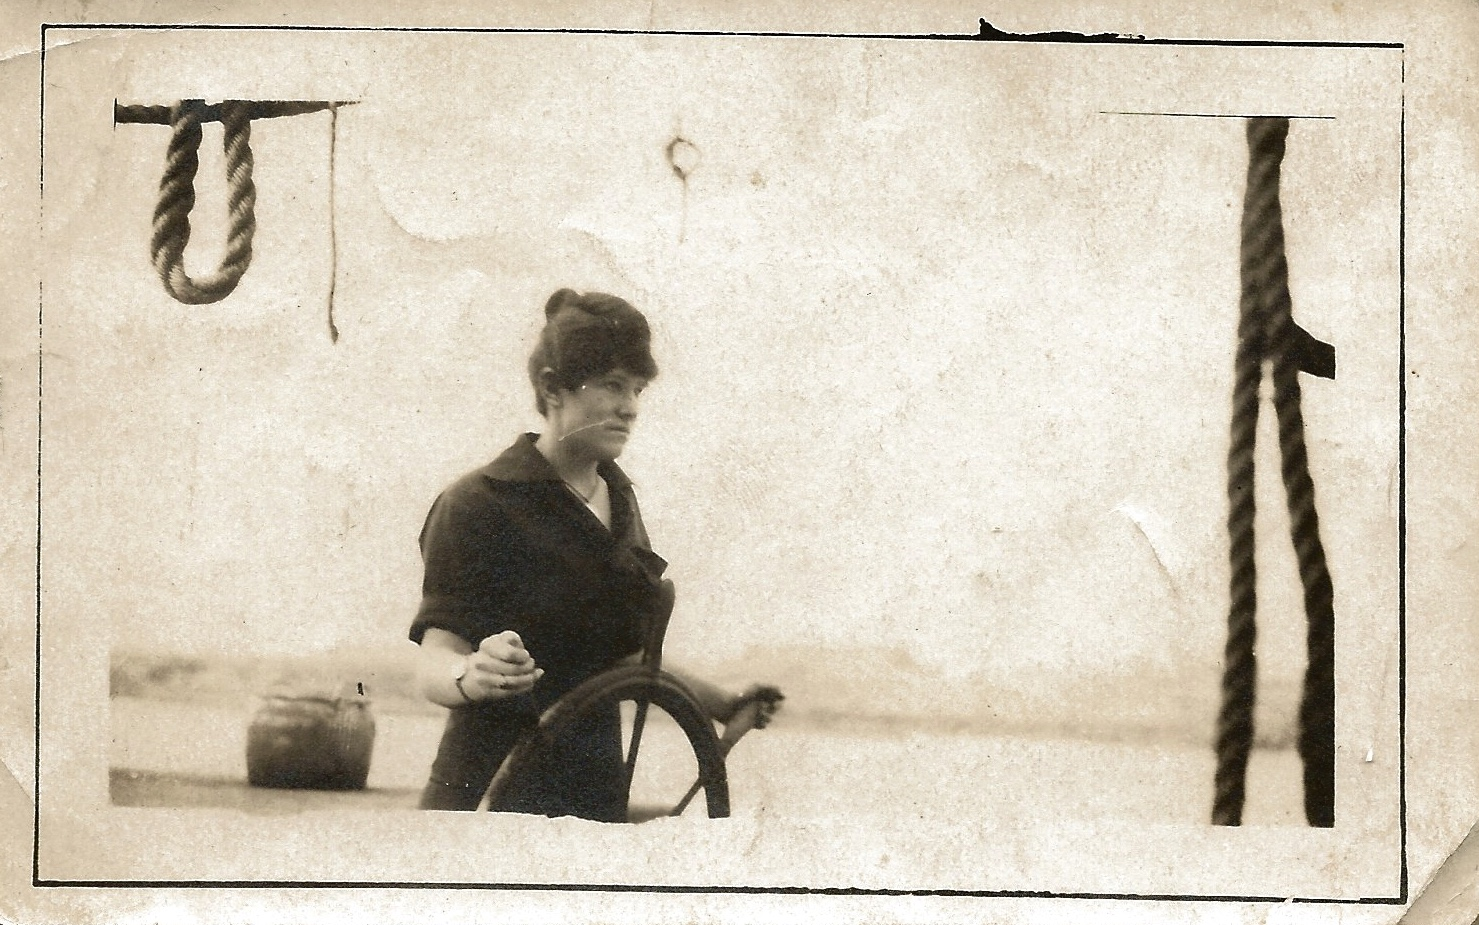 This is Bertha at the helm of some vessel. No doubt she threw the captain overboard.